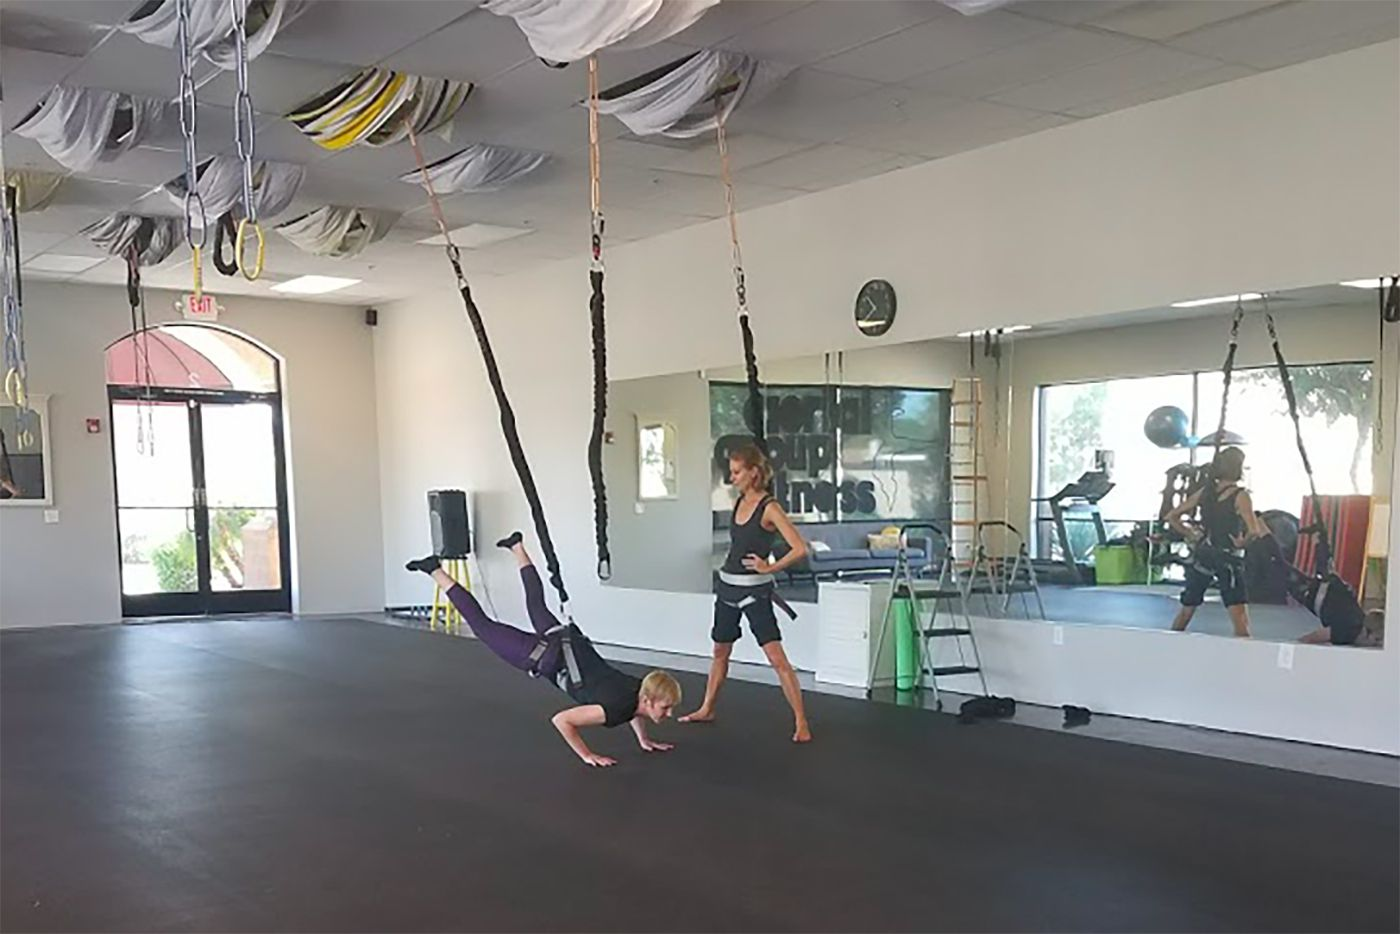 You Might Not Have To Go All The Way To Thailand To Try The Bungee Workout Anymore You Just Have To Trek To Th Bungee Workout Personal Training Studio Workout